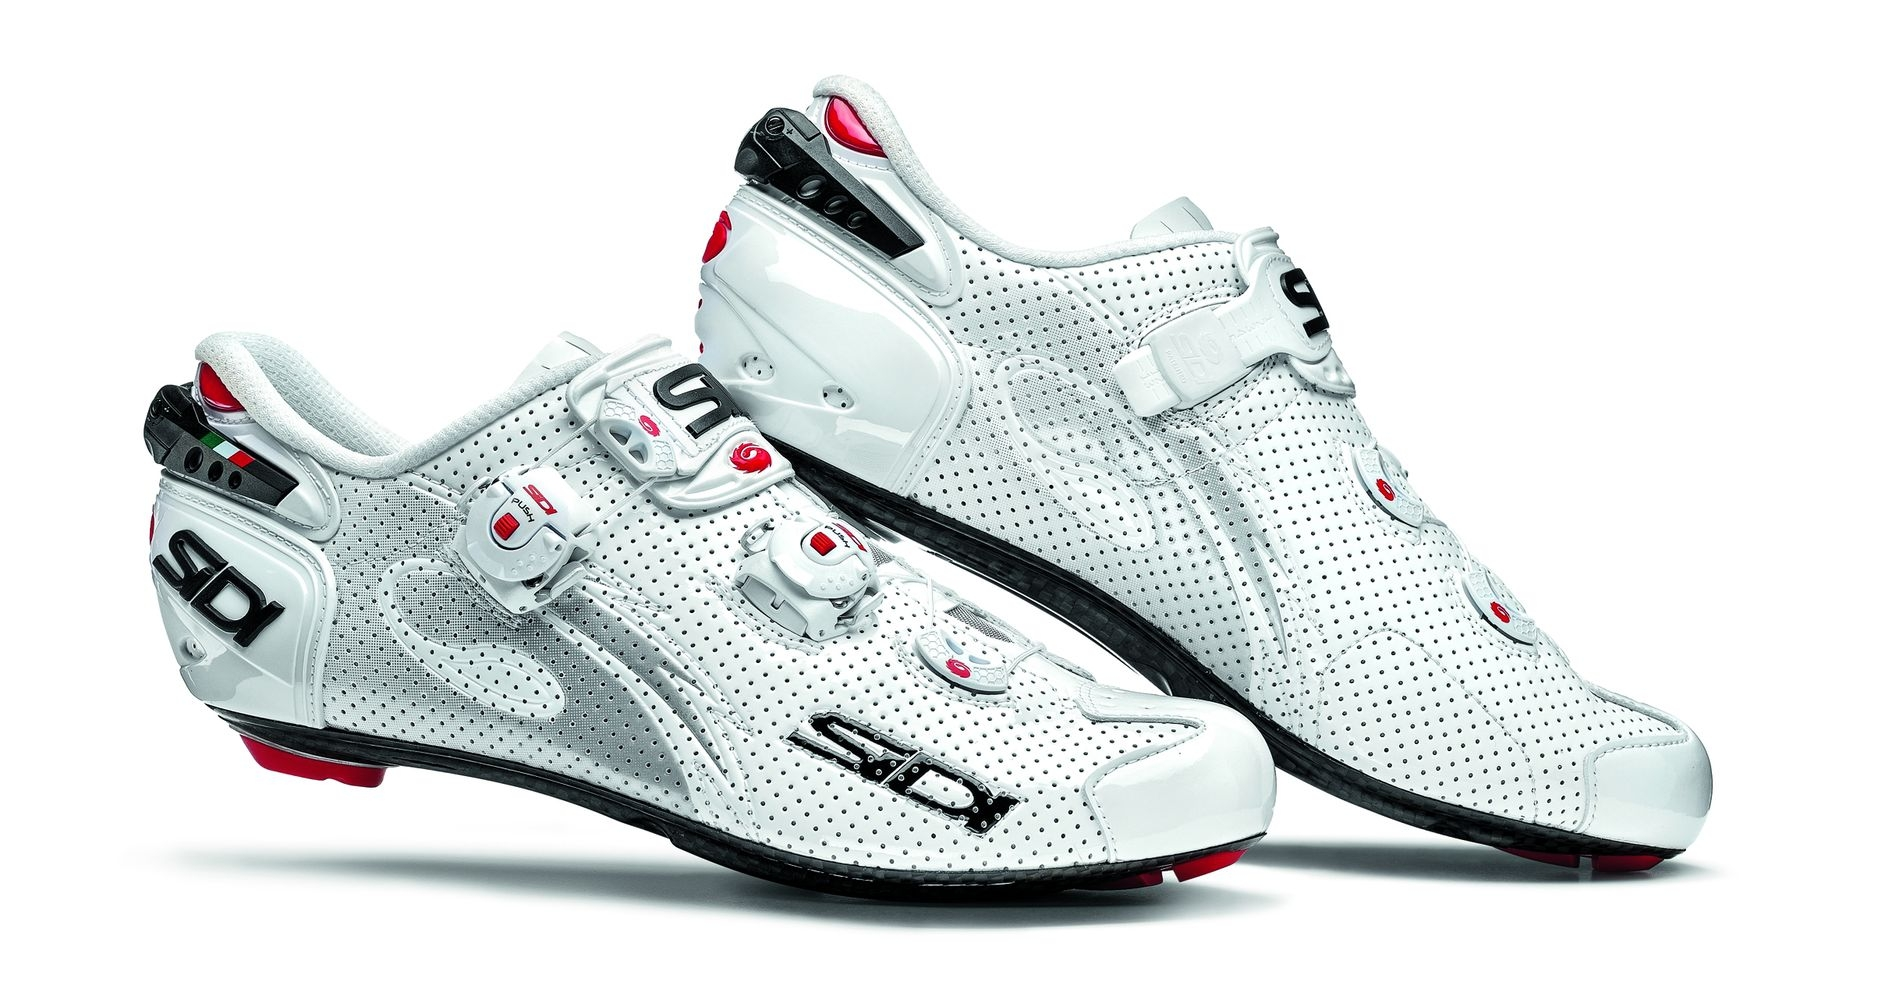 Chaussures Sidi WIRE Carbon AIR Vernice Blanc verni - 42